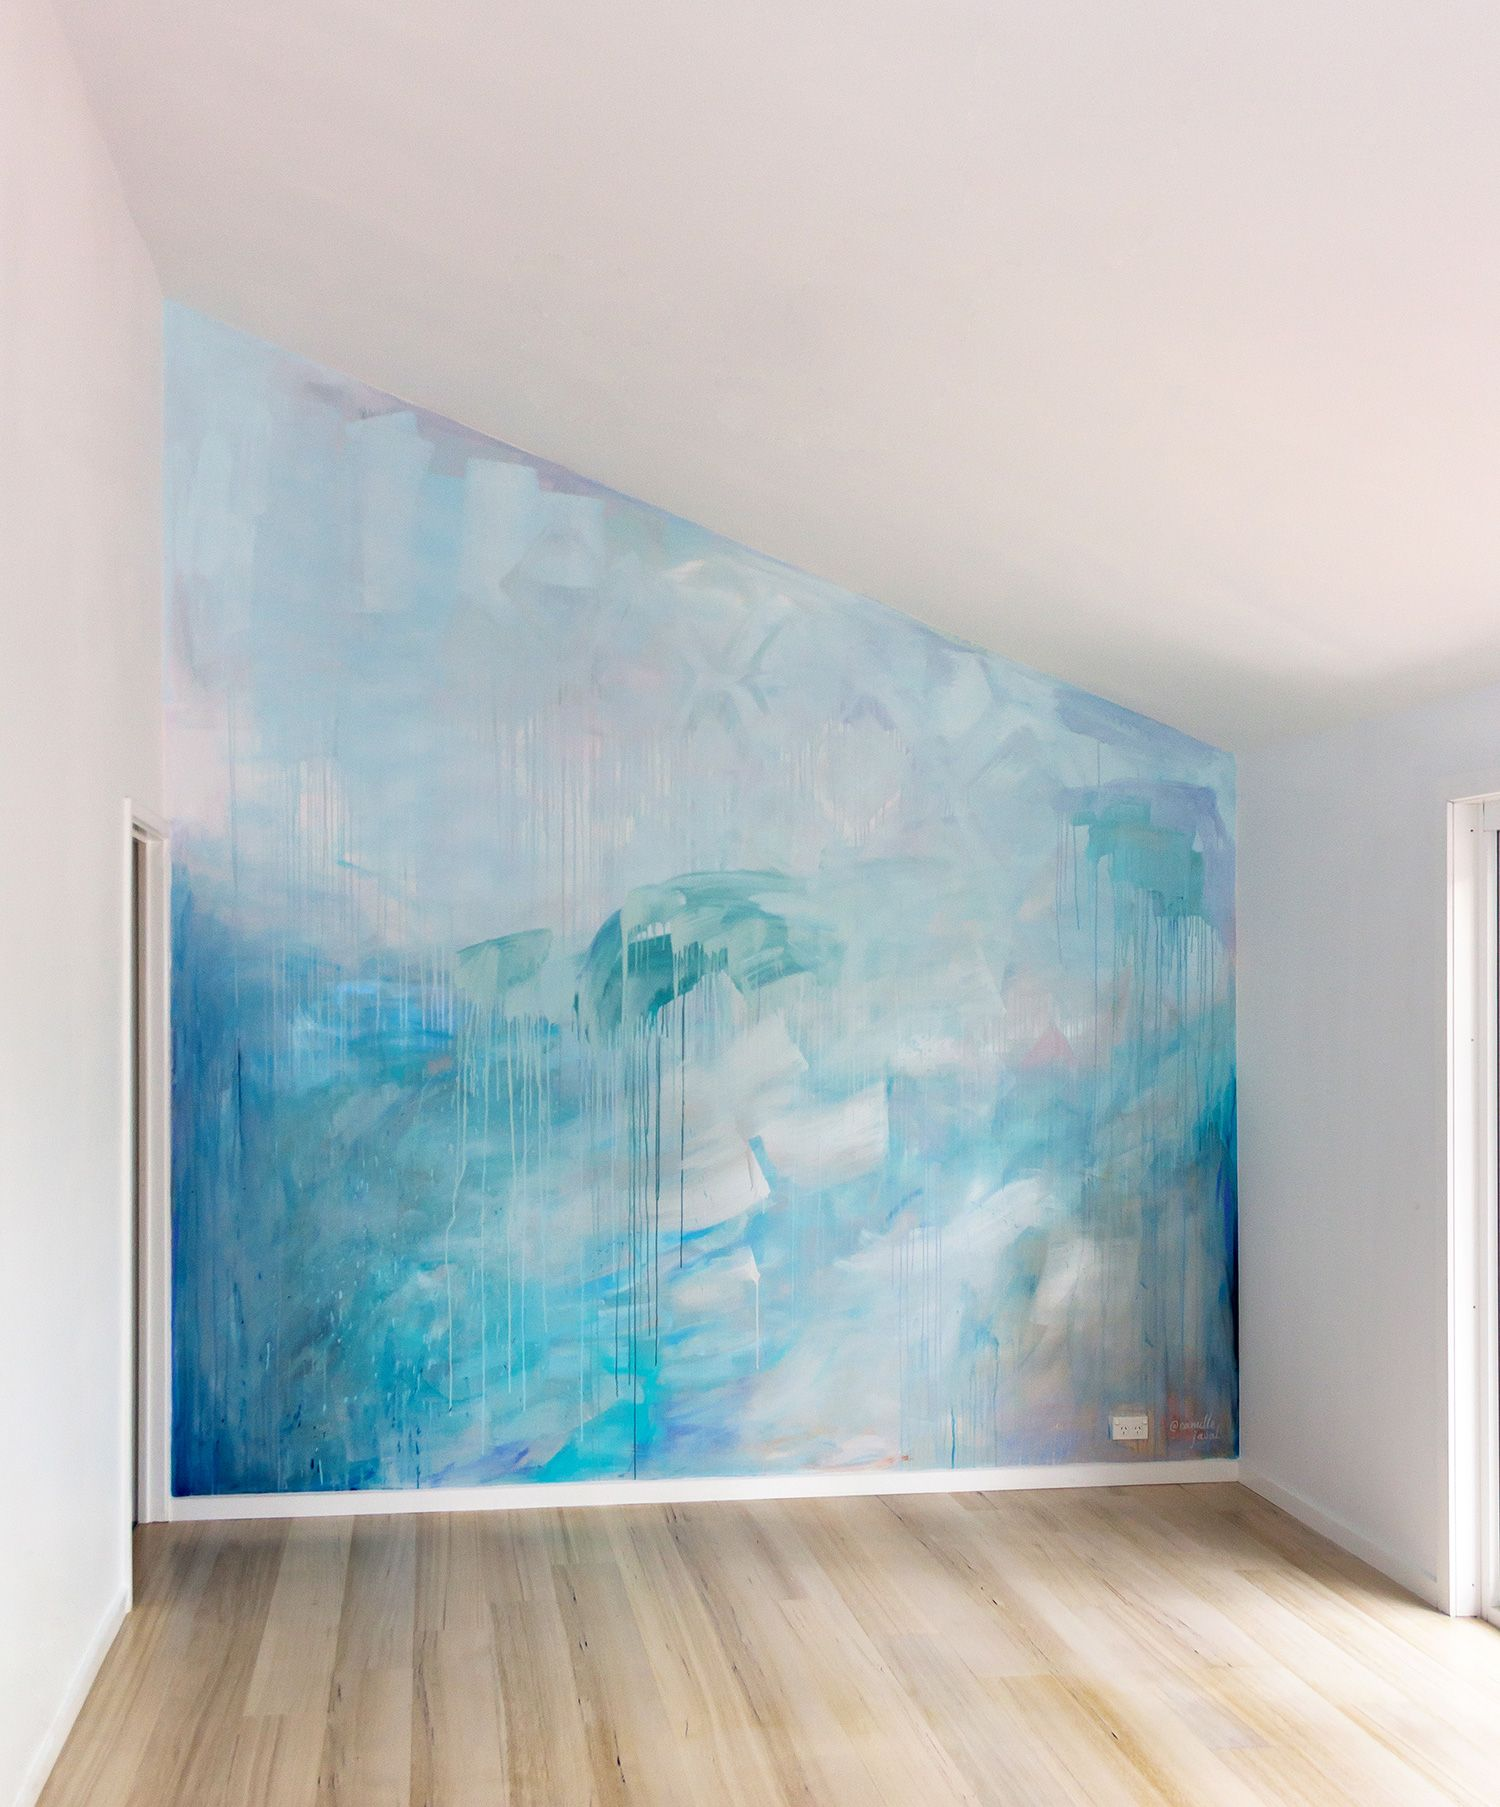 Ocean Water Painted Contemporary Abstract Mural In Pastel Blue Green And Metallic Paint Featuring A Wave Drips And Geometri Mural Wall Art Ocean Mural Mural